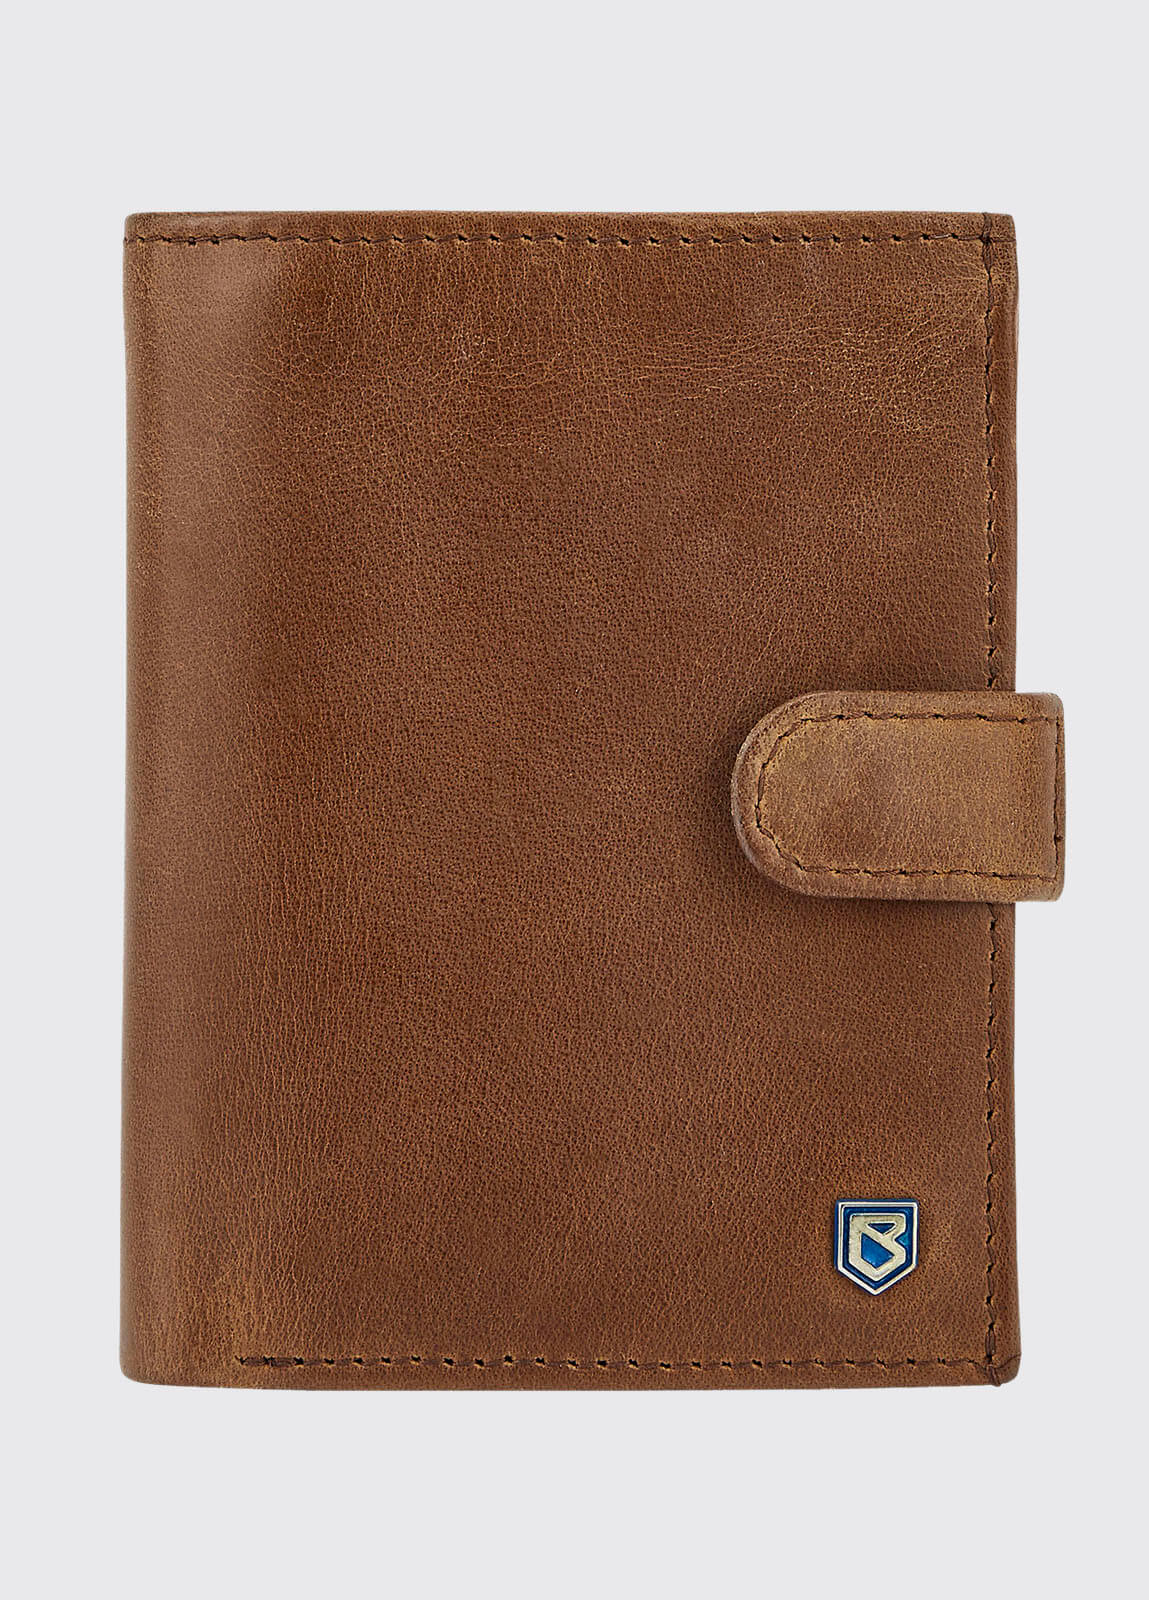 Thurles Leather Wallet - Chestnut